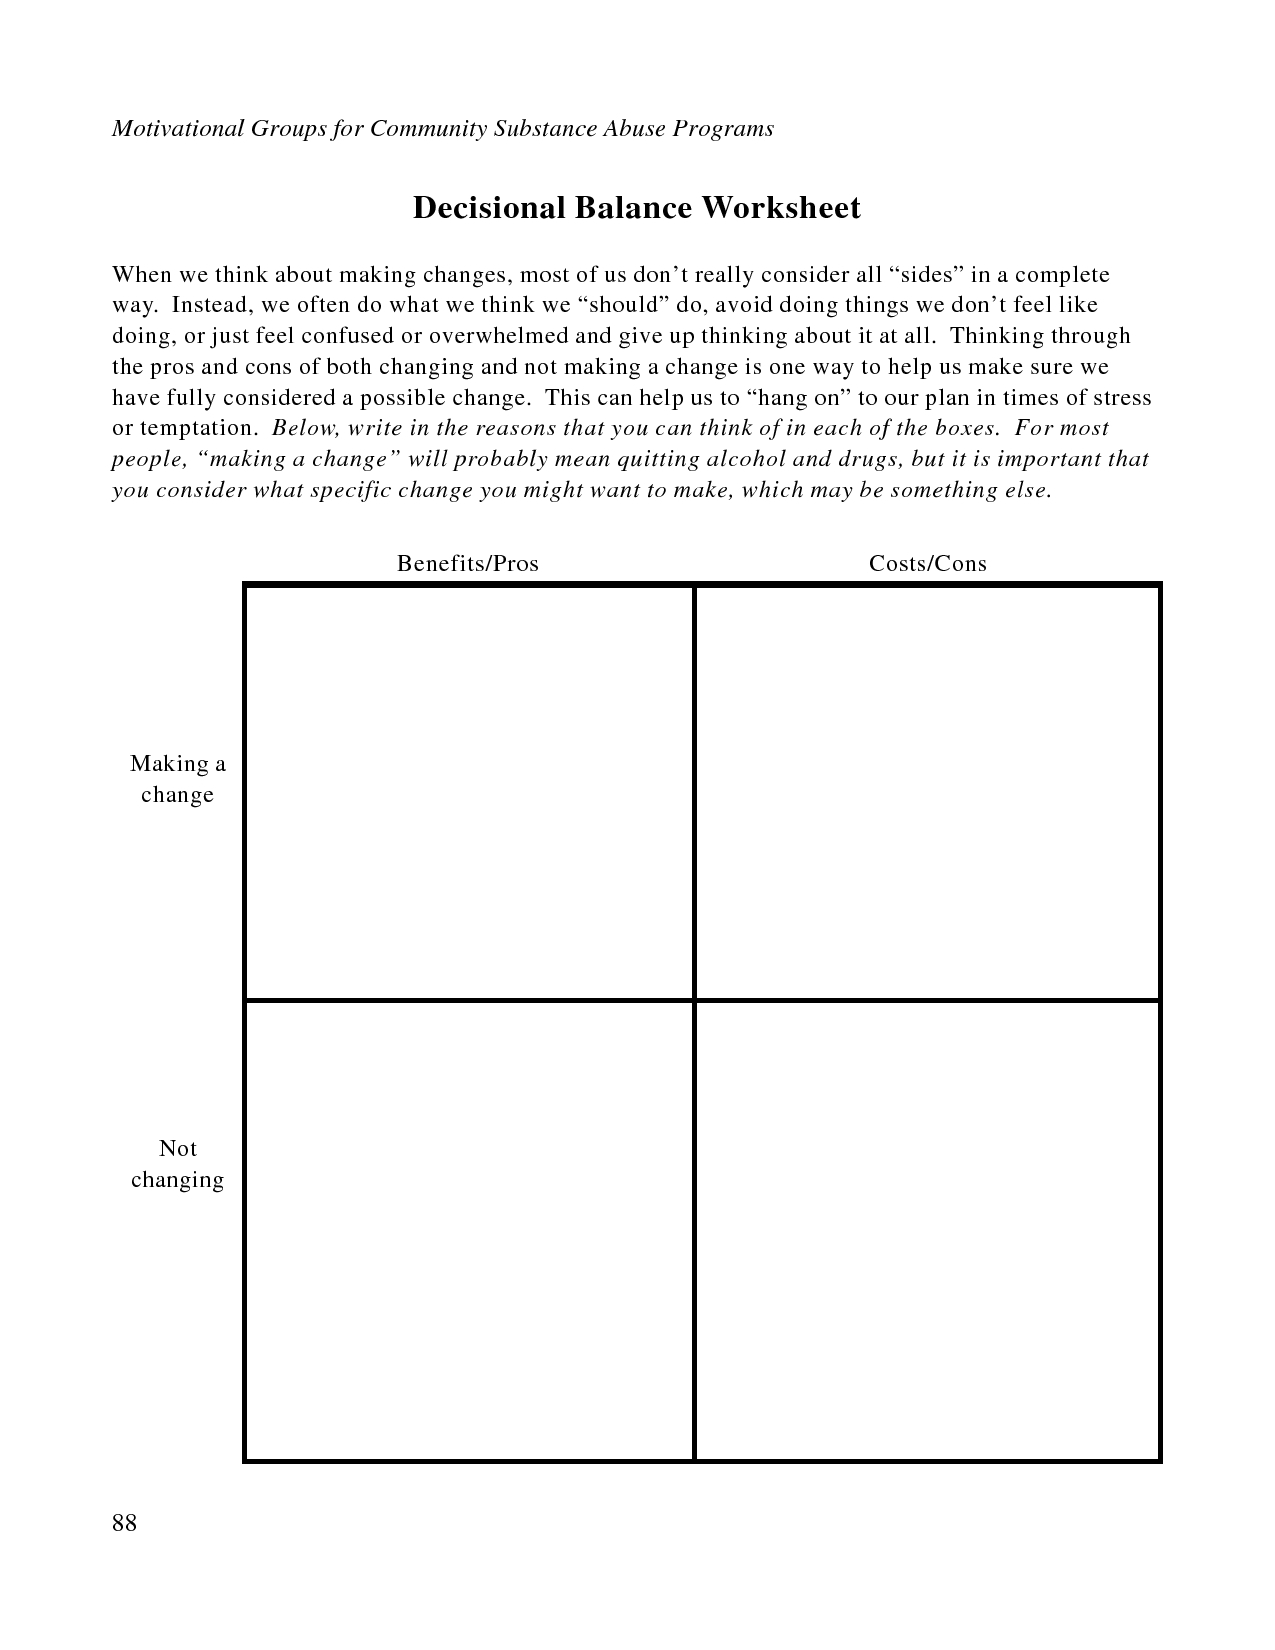 Free Printable Dbt Worksheets | Decisional Balance Worksheet - Pdf | Free Printable Counseling Worksheets